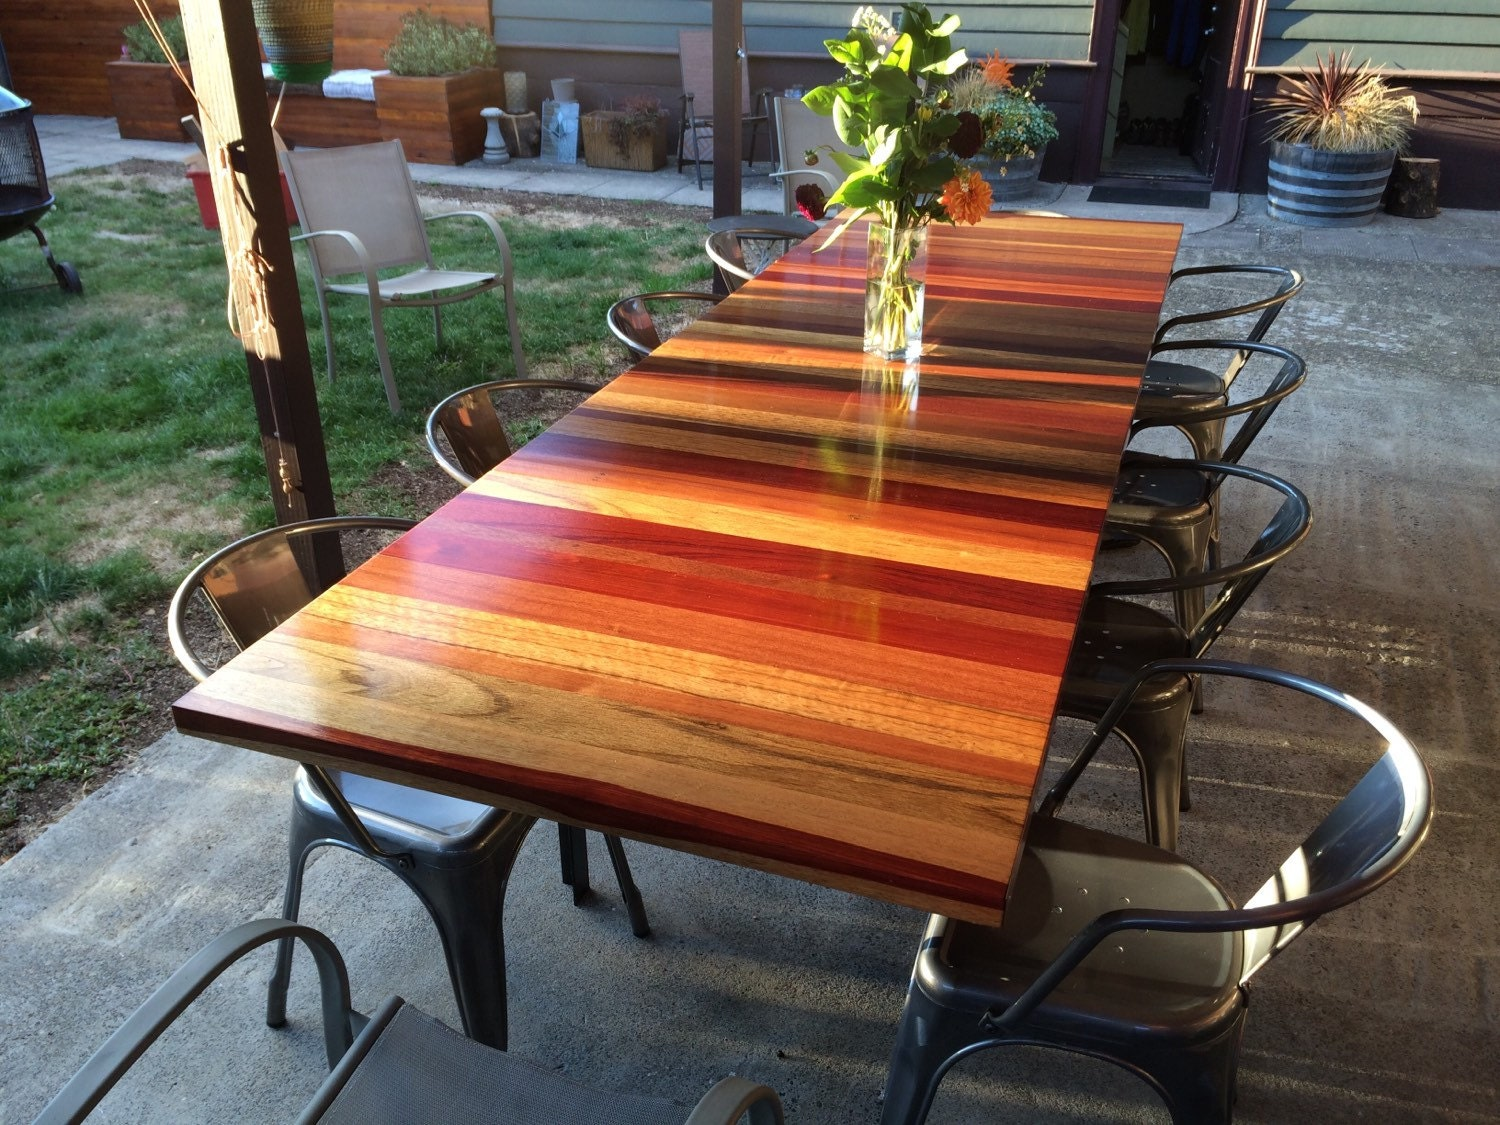 60 Table Seats How Many Reclaimed Dine Table Clear Finish No Staining Extra Long